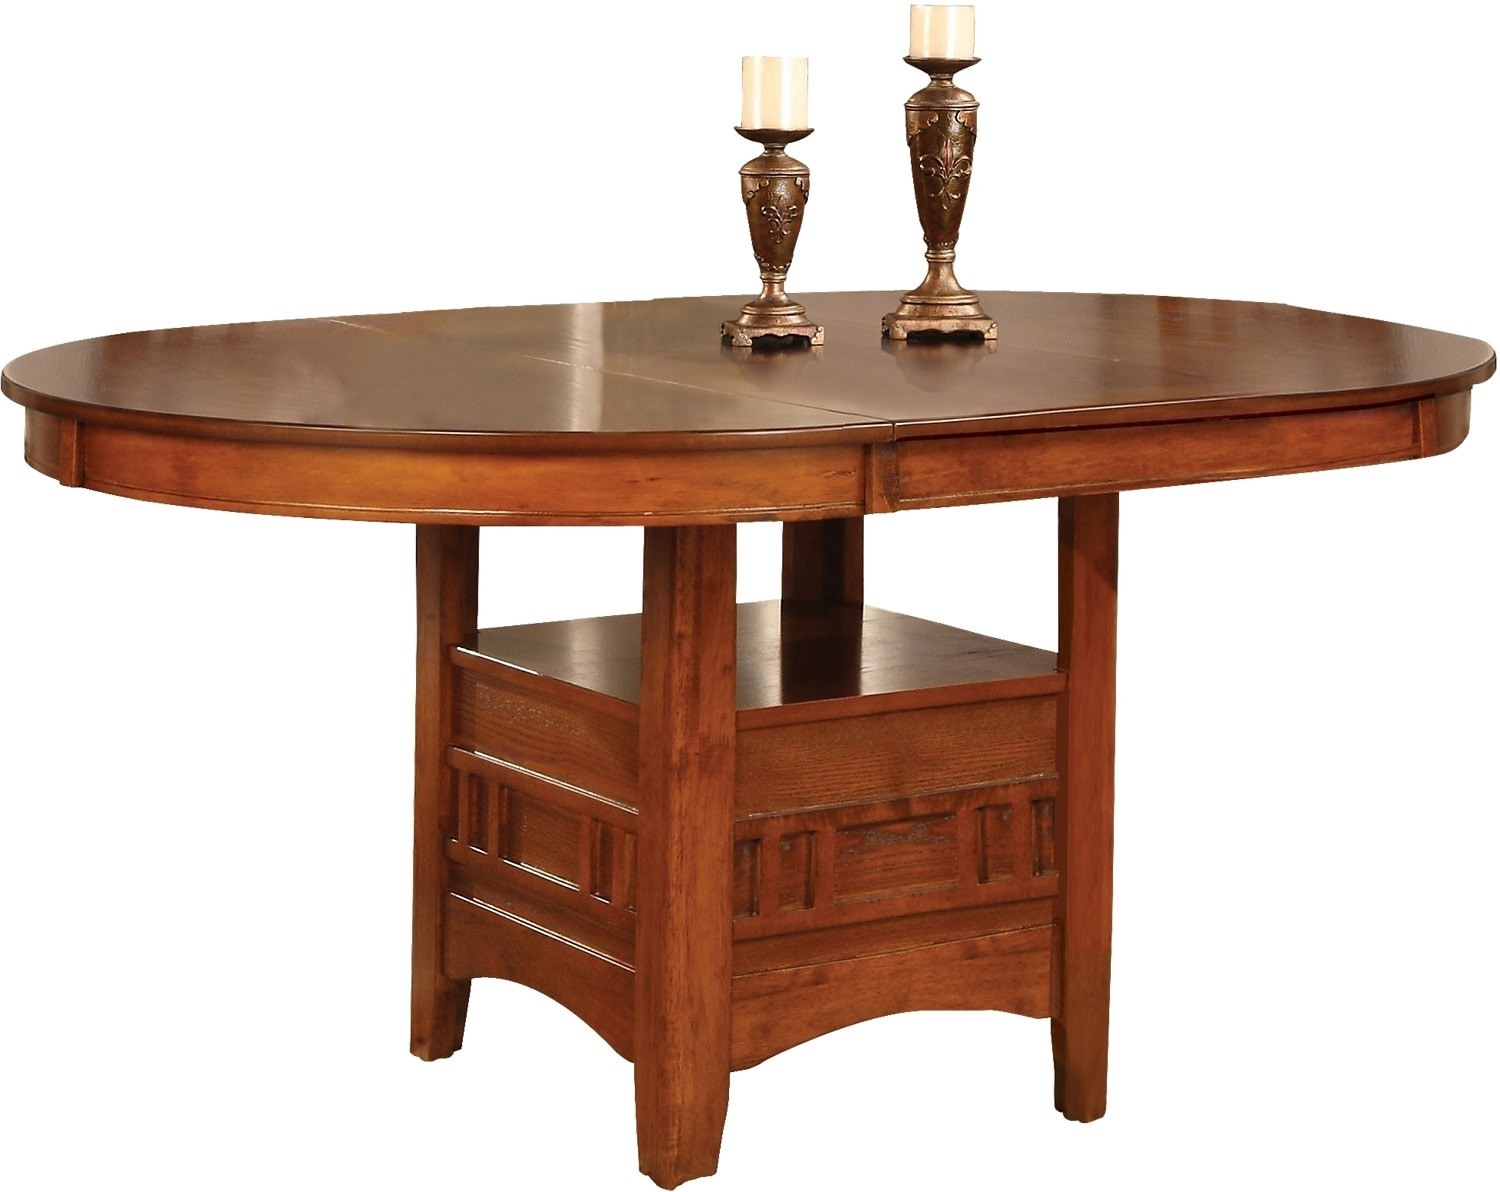 Dining Room Furniture - Dalton Oak Dining Table